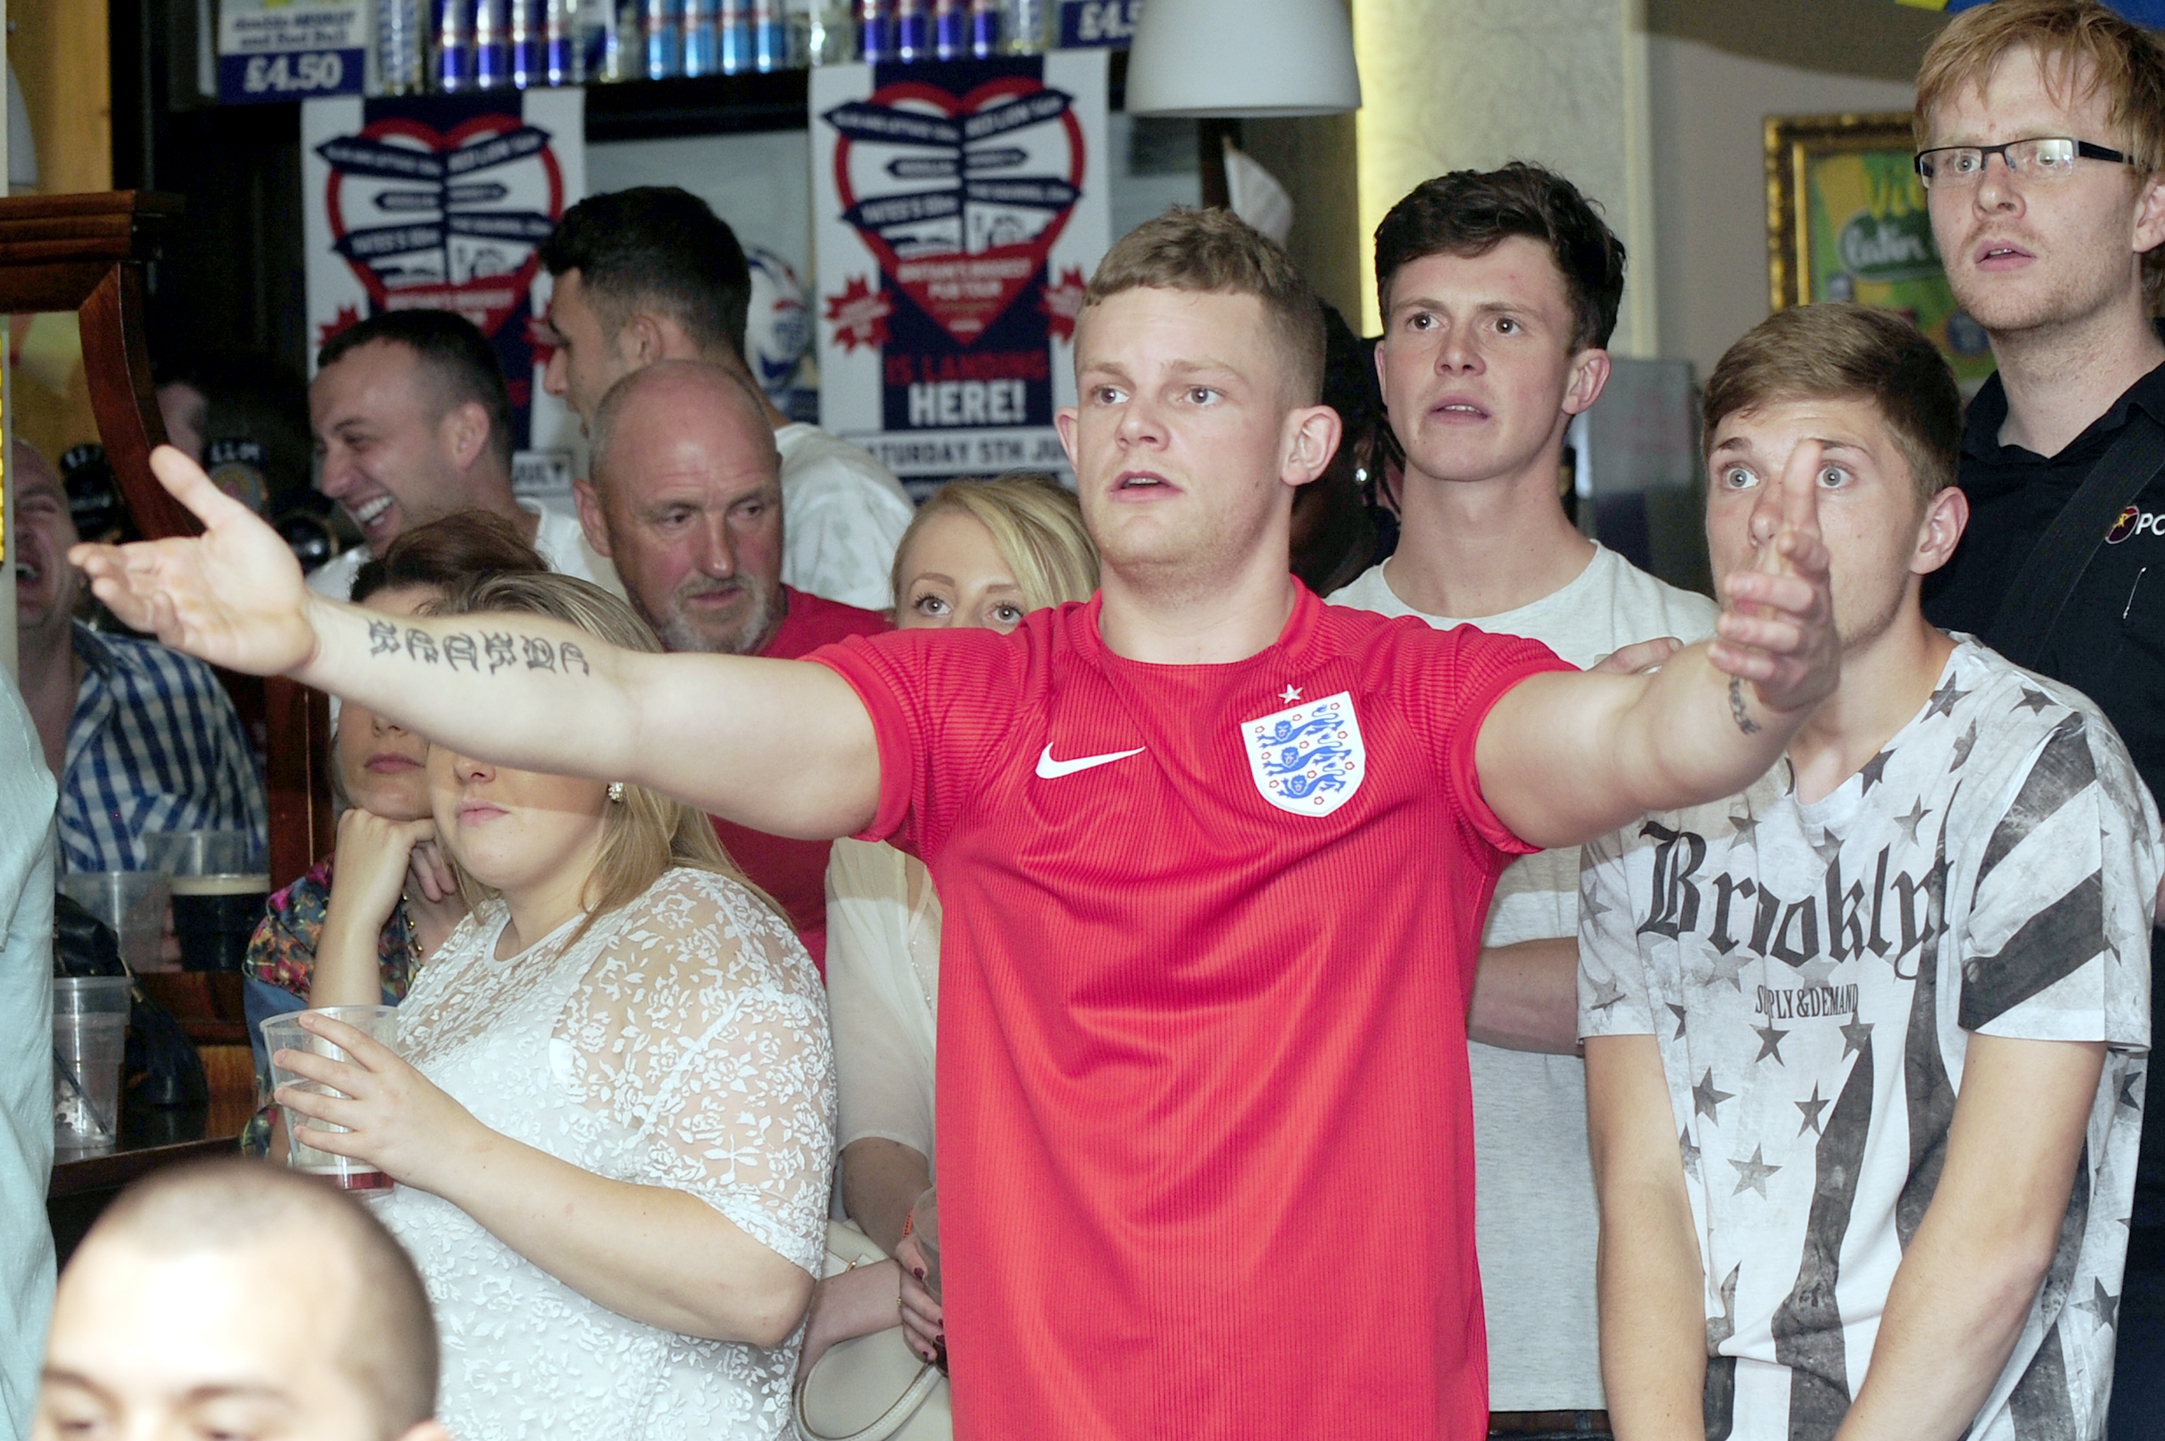 Bolton fans dejected as Suarez sinks England